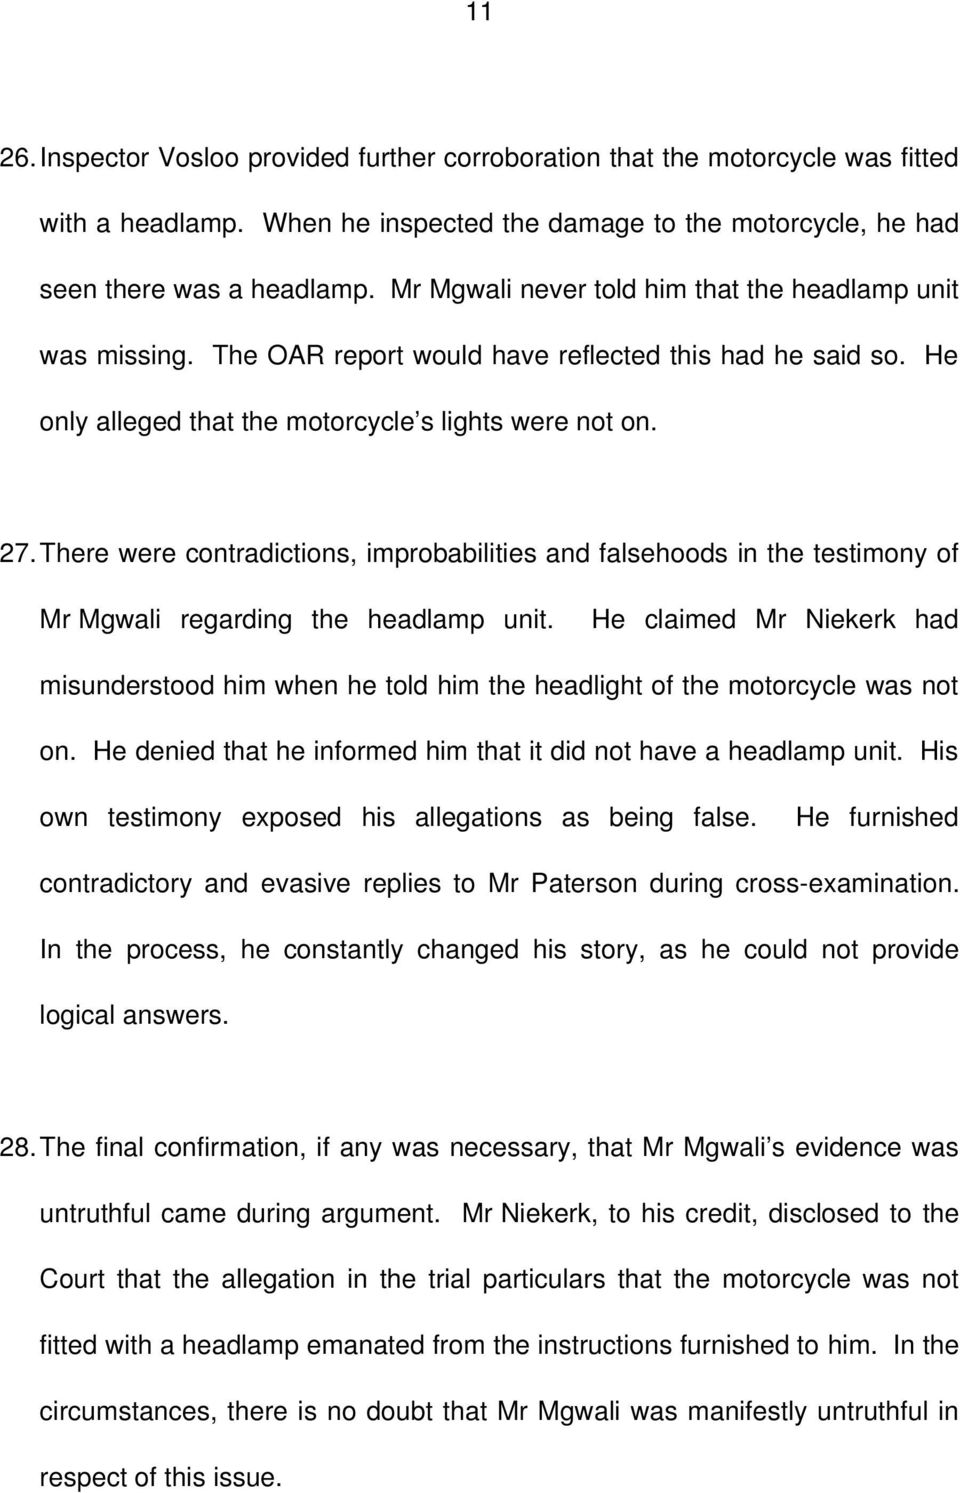 There were contradictions, improbabilities and falsehoods in the testimony of Mr Mgwali regarding the headlamp unit.